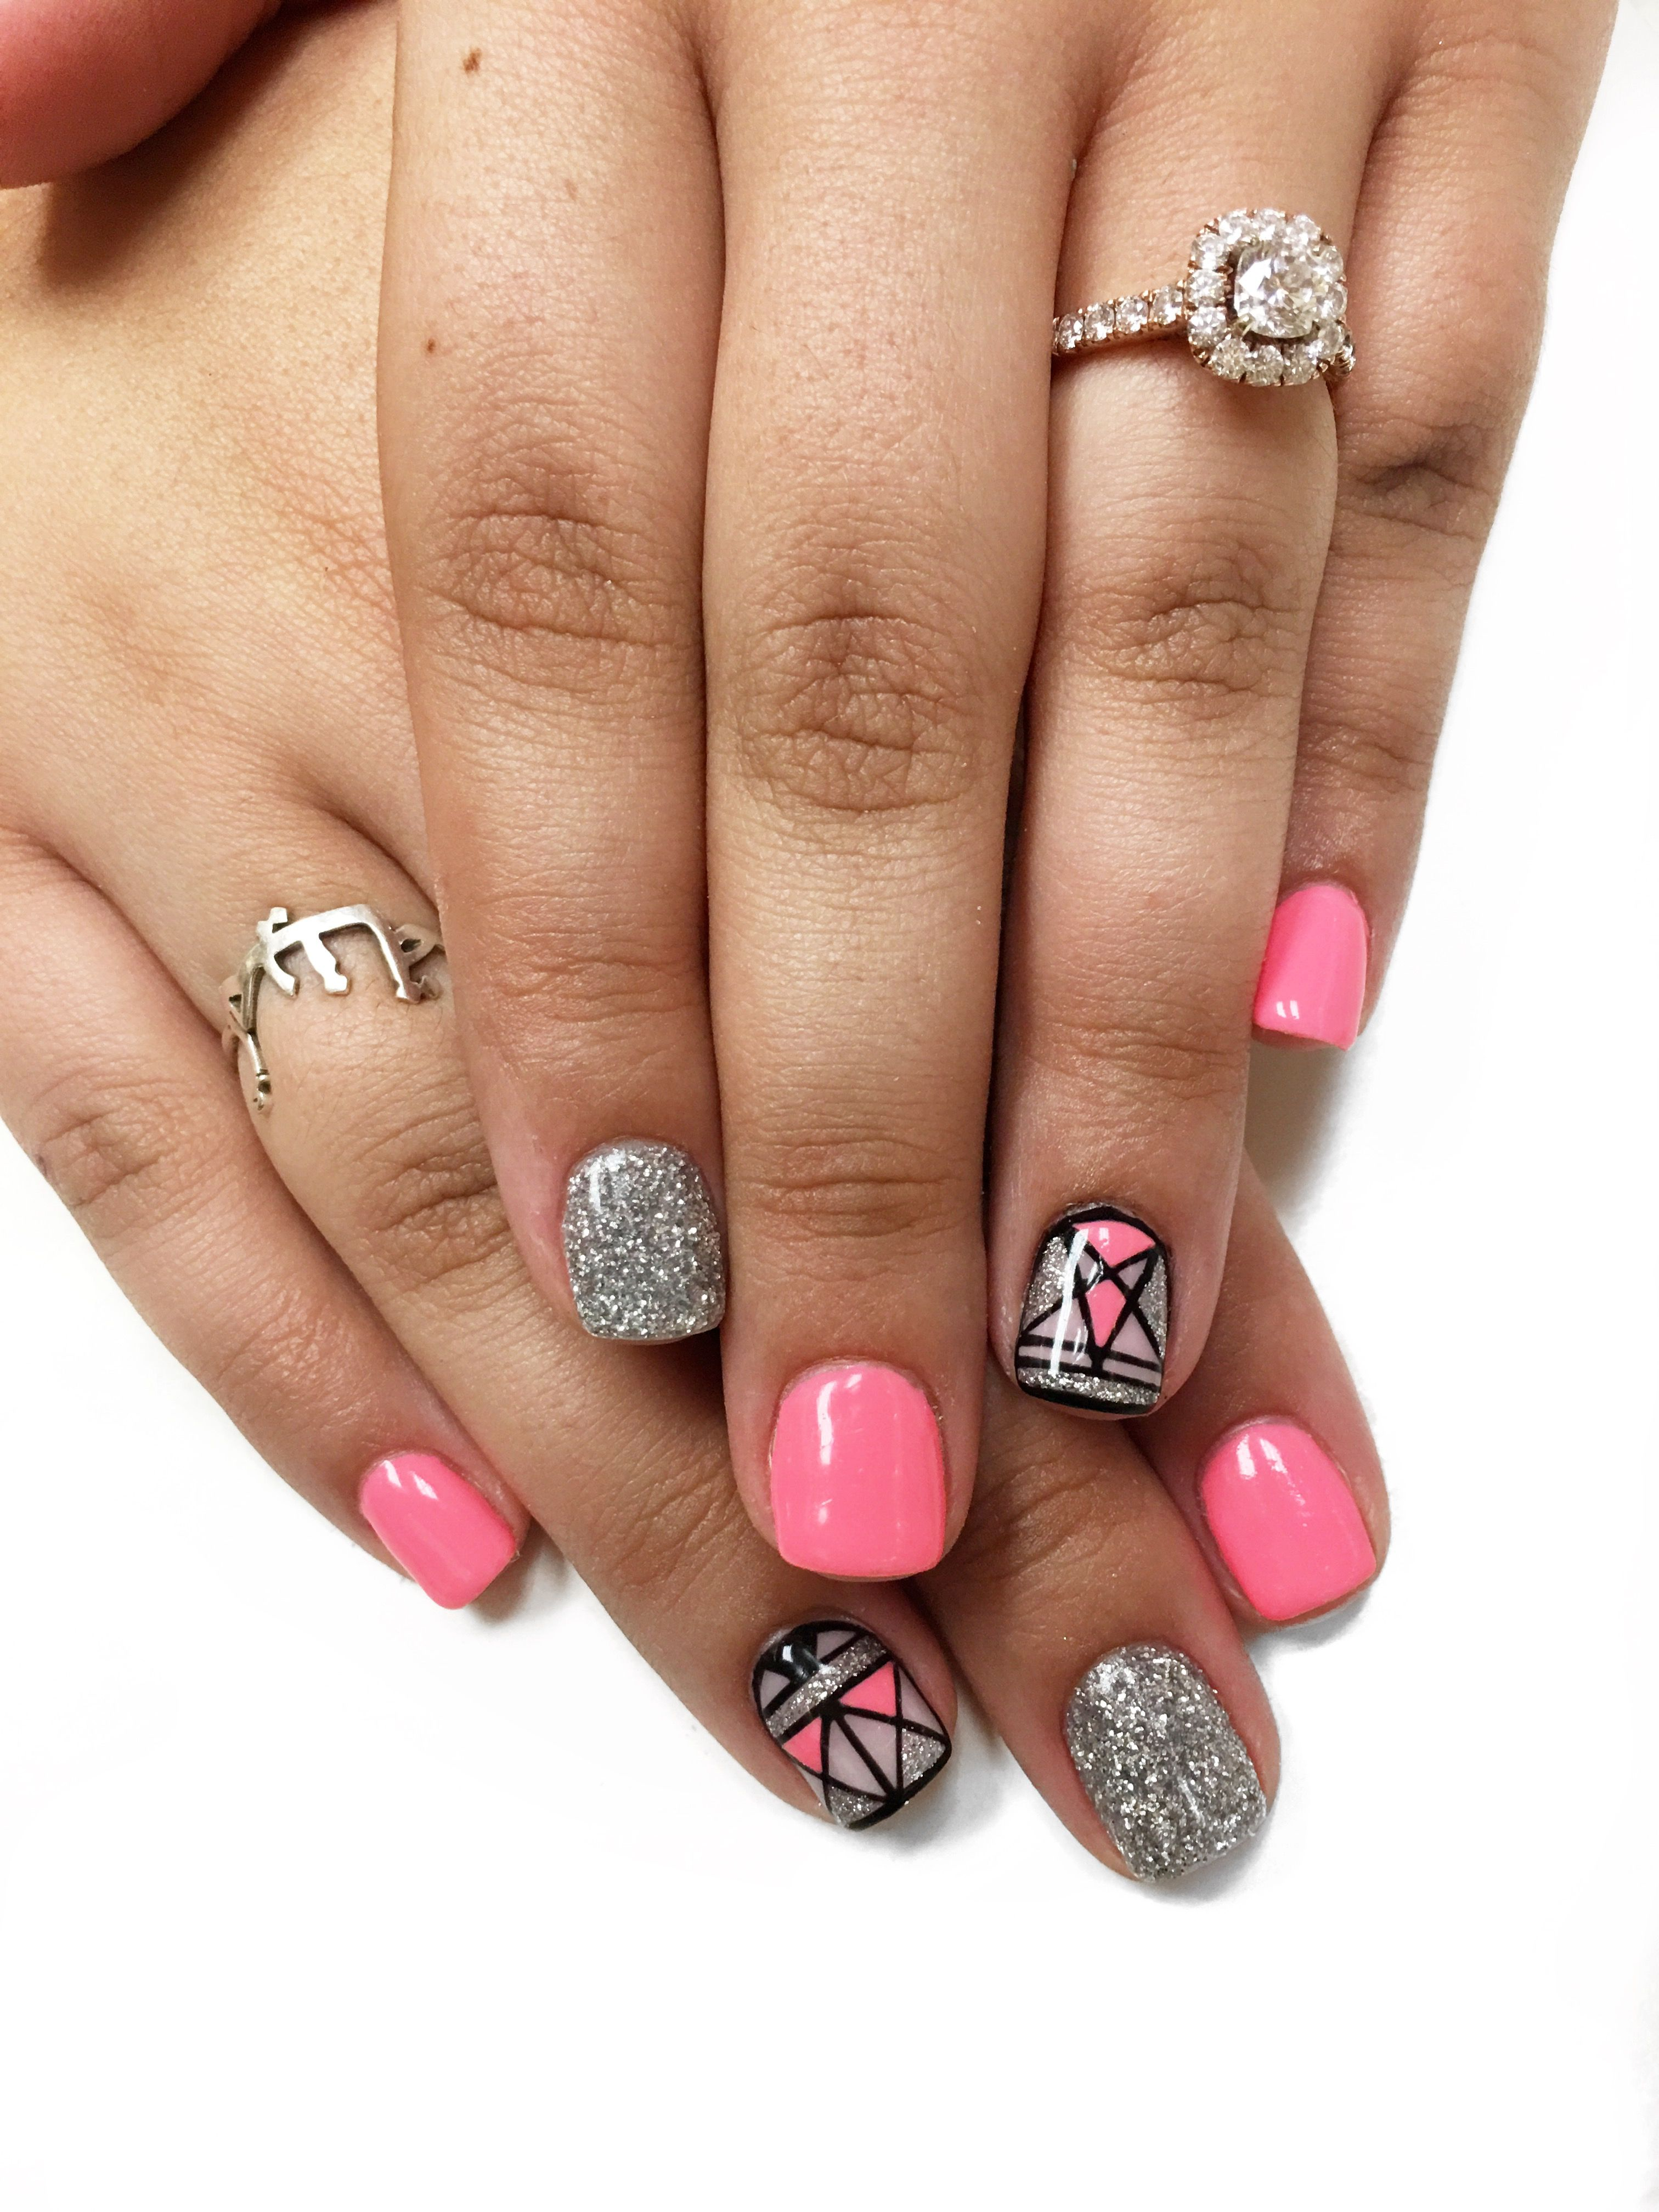 Summer Bright Pink Nails Loose Glitter Nails Nail Art Designs